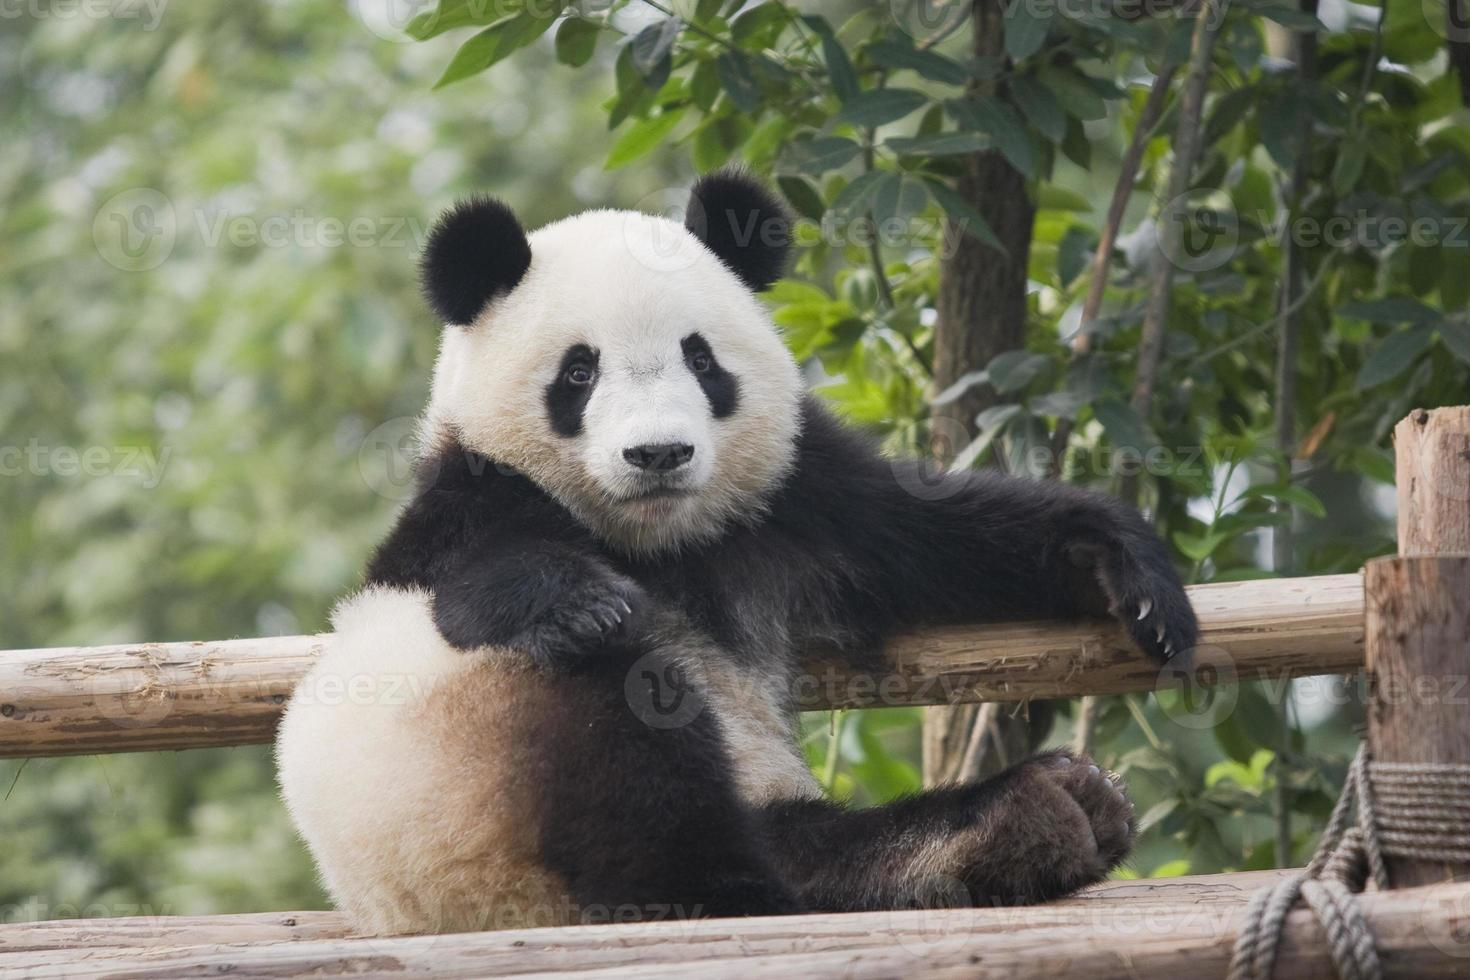 An adorable adult panda on a bamboo fence photo